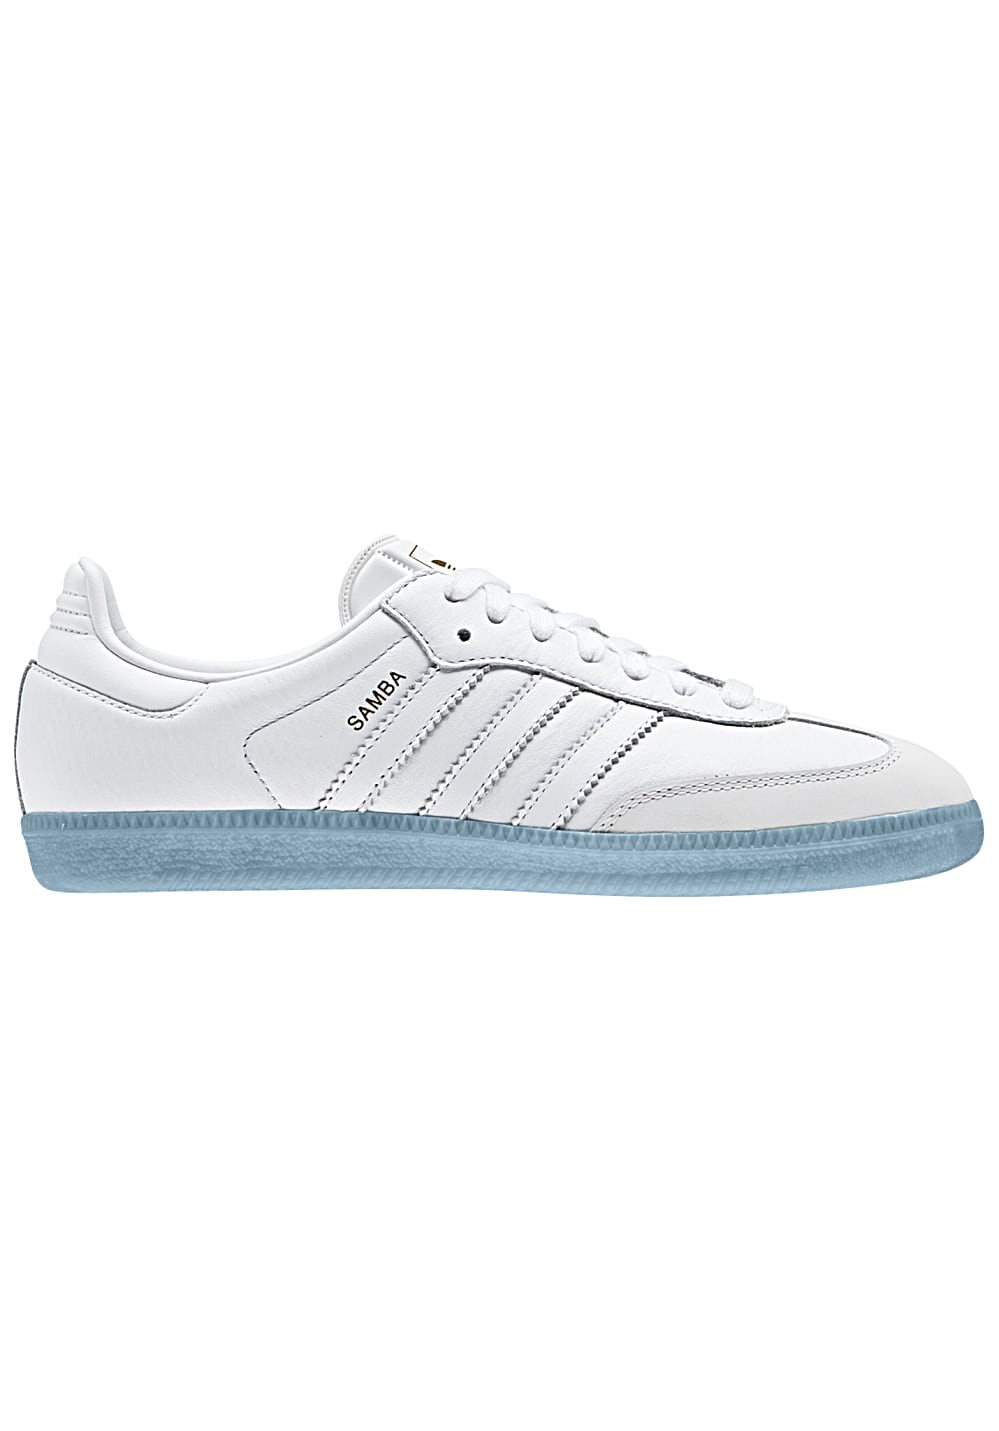 best sneakers f38fb 7afd8 adidas Originals Samba - Sneaker für Damen - Weiß - Planet S